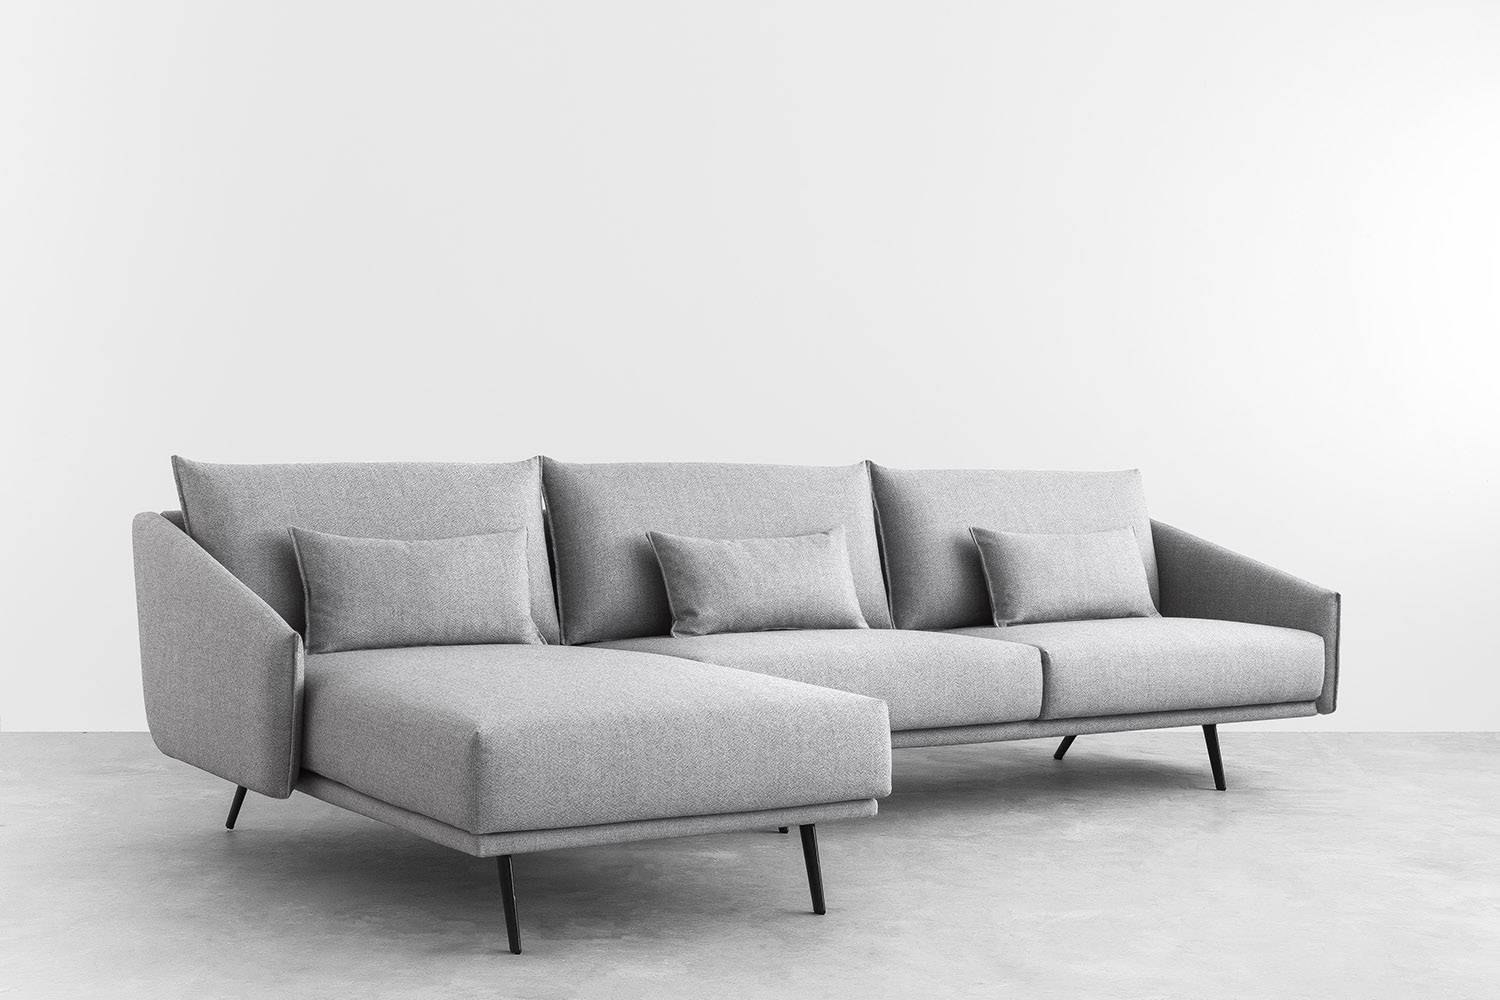 Costura Sofa With Chaiselongue - Eames Lighting regarding Sofas With Chaise Longue (Image 7 of 30)